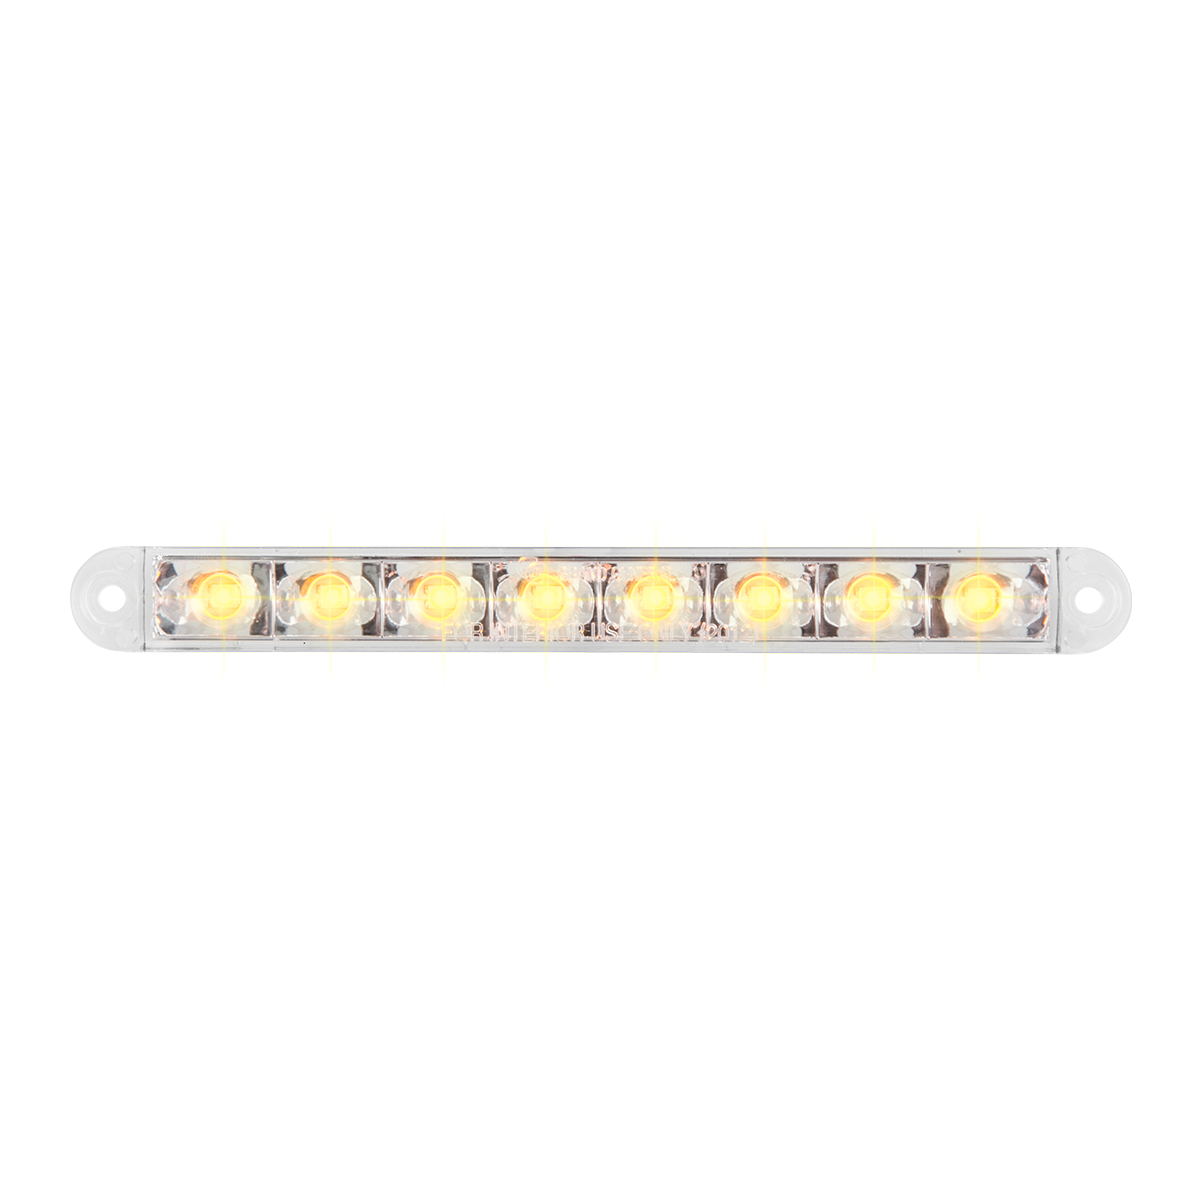 "74761 6.5"" Flush Mount Pearl Marker & Turn LED Light Bar"